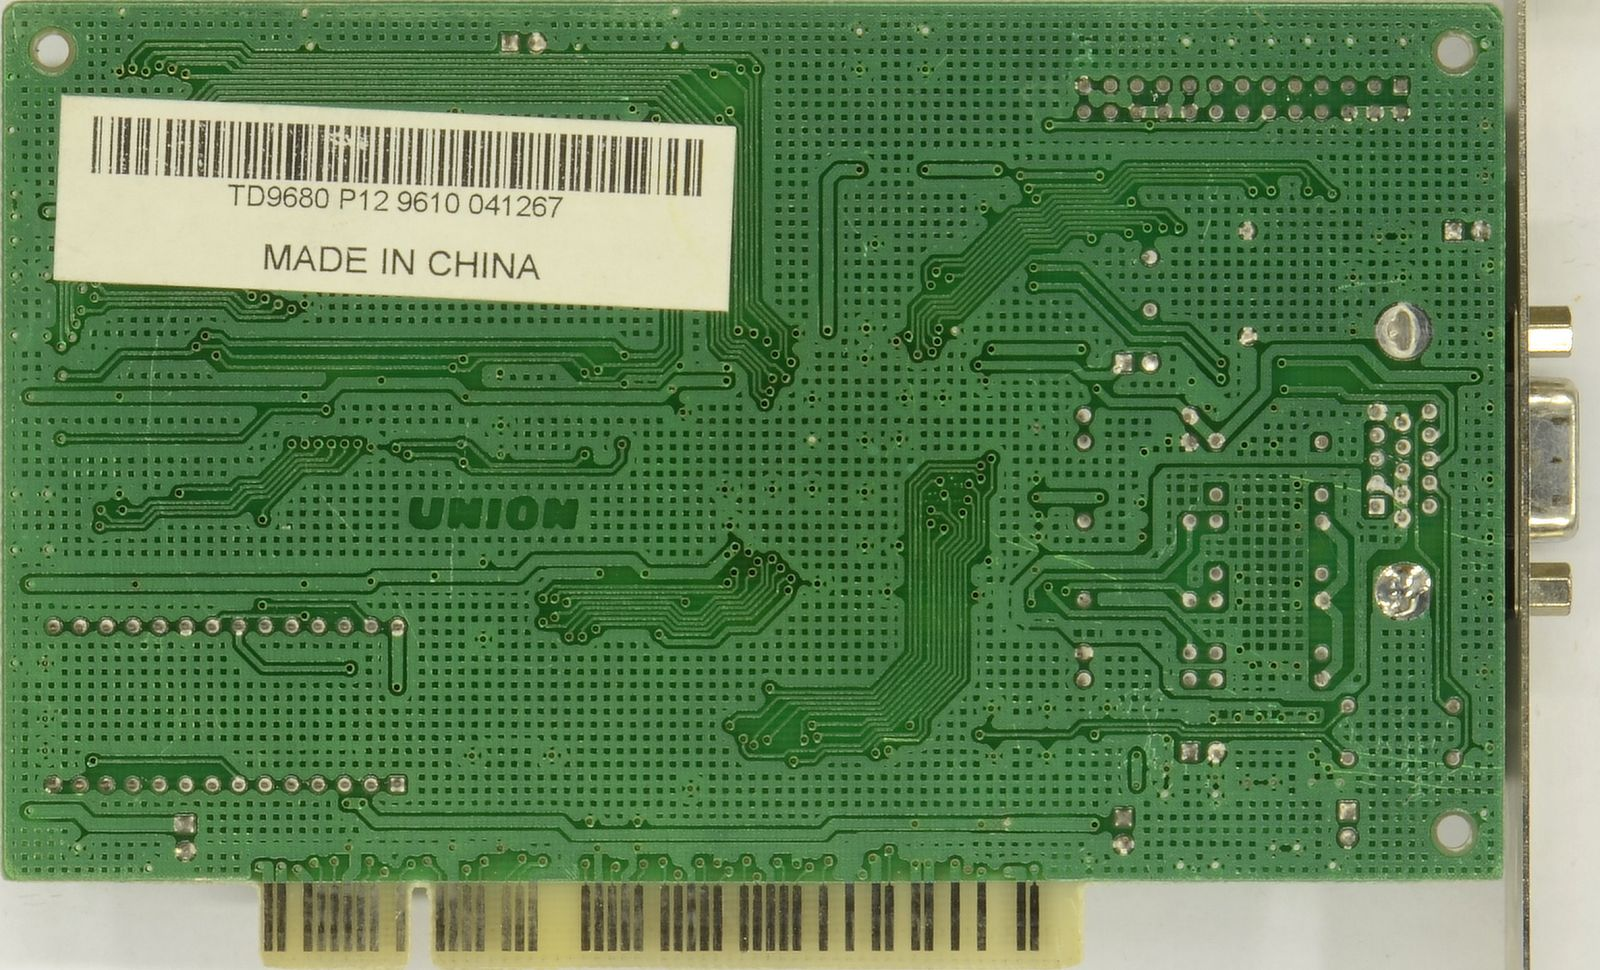 Pci 9440 Trident Driver Download